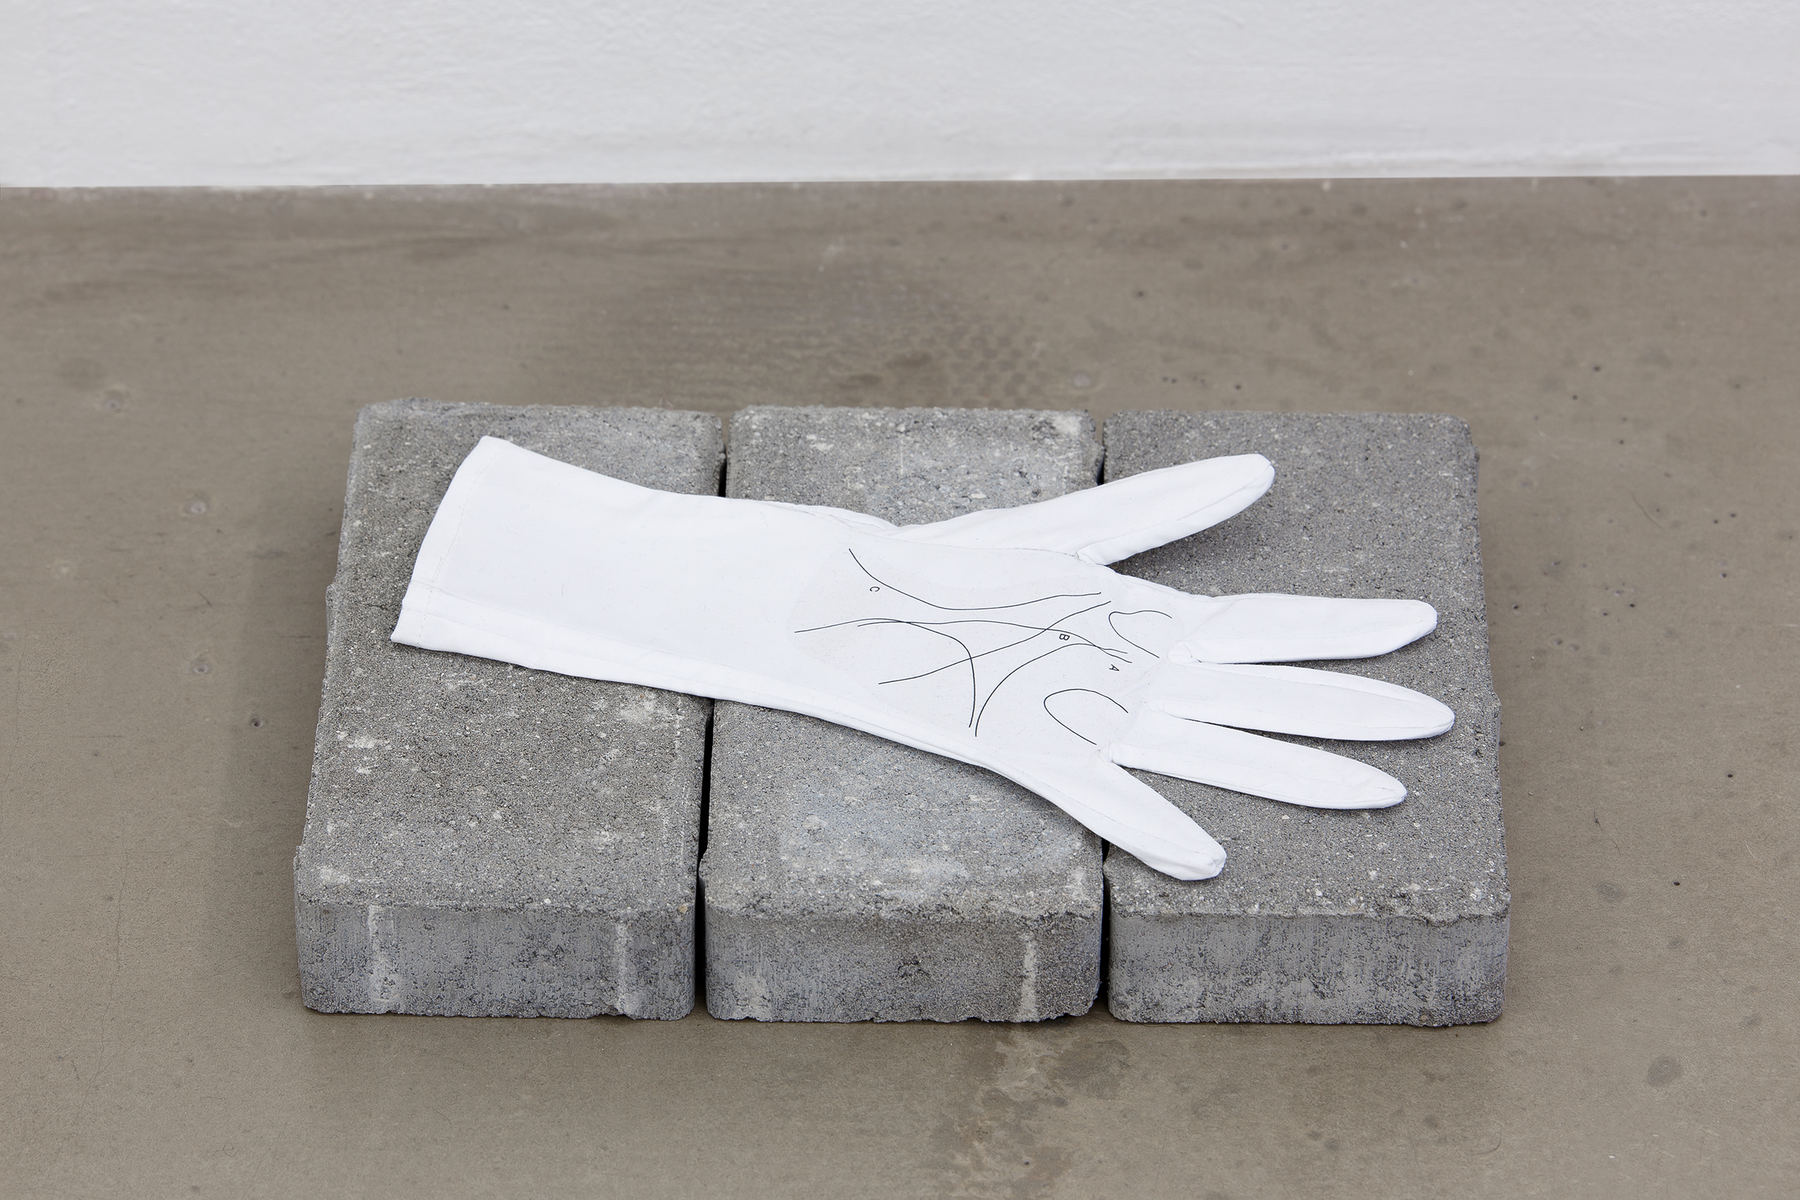 Palmistry, 2015, cotton glove, 14 x 27 cm